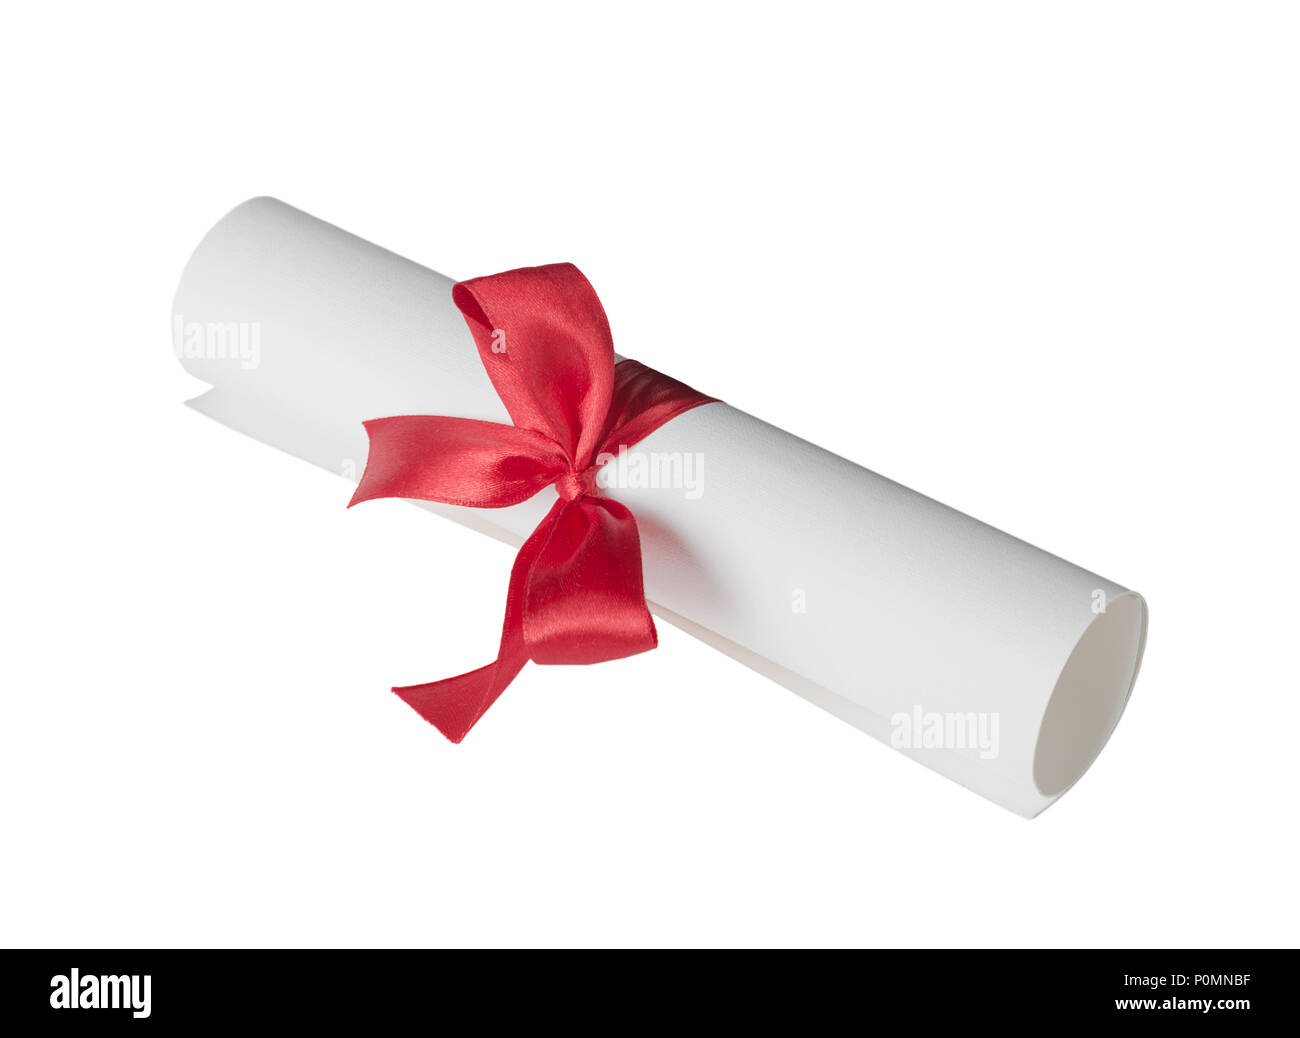 Paper scroll (diploma) tied with red ribbon isolated on a white background - Stock Image